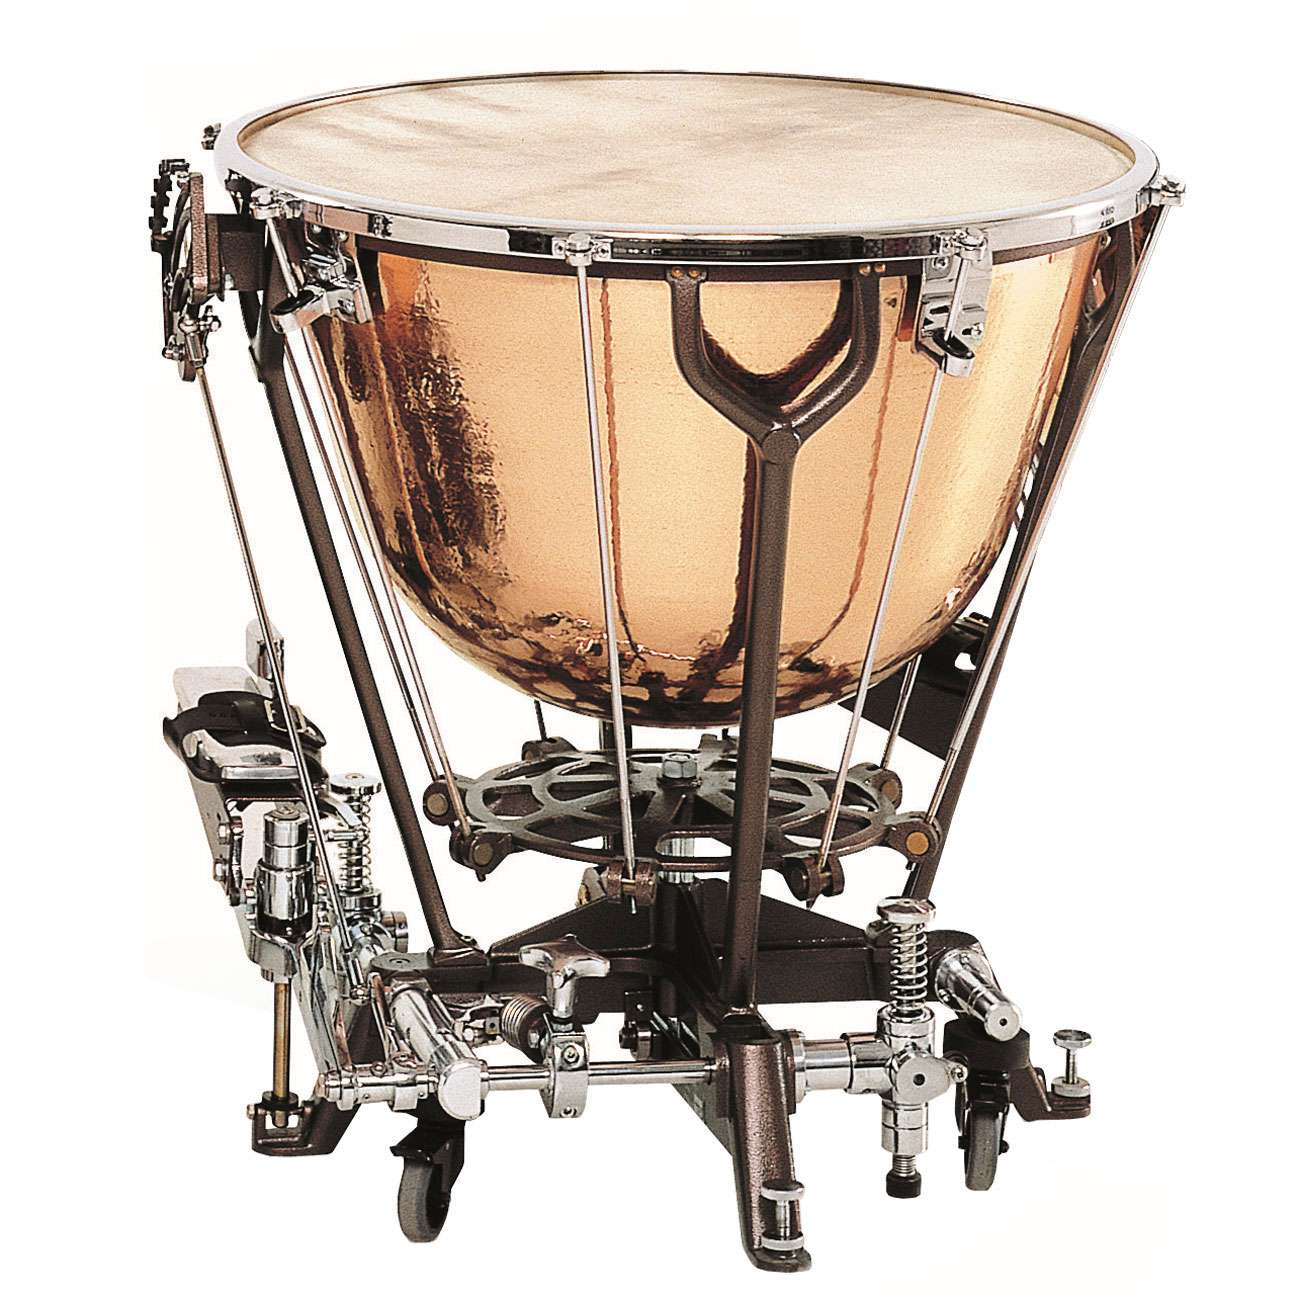 "Adams 25"" Philharmonic Light Timpani with Dresden Pedal and Calfskin Head"